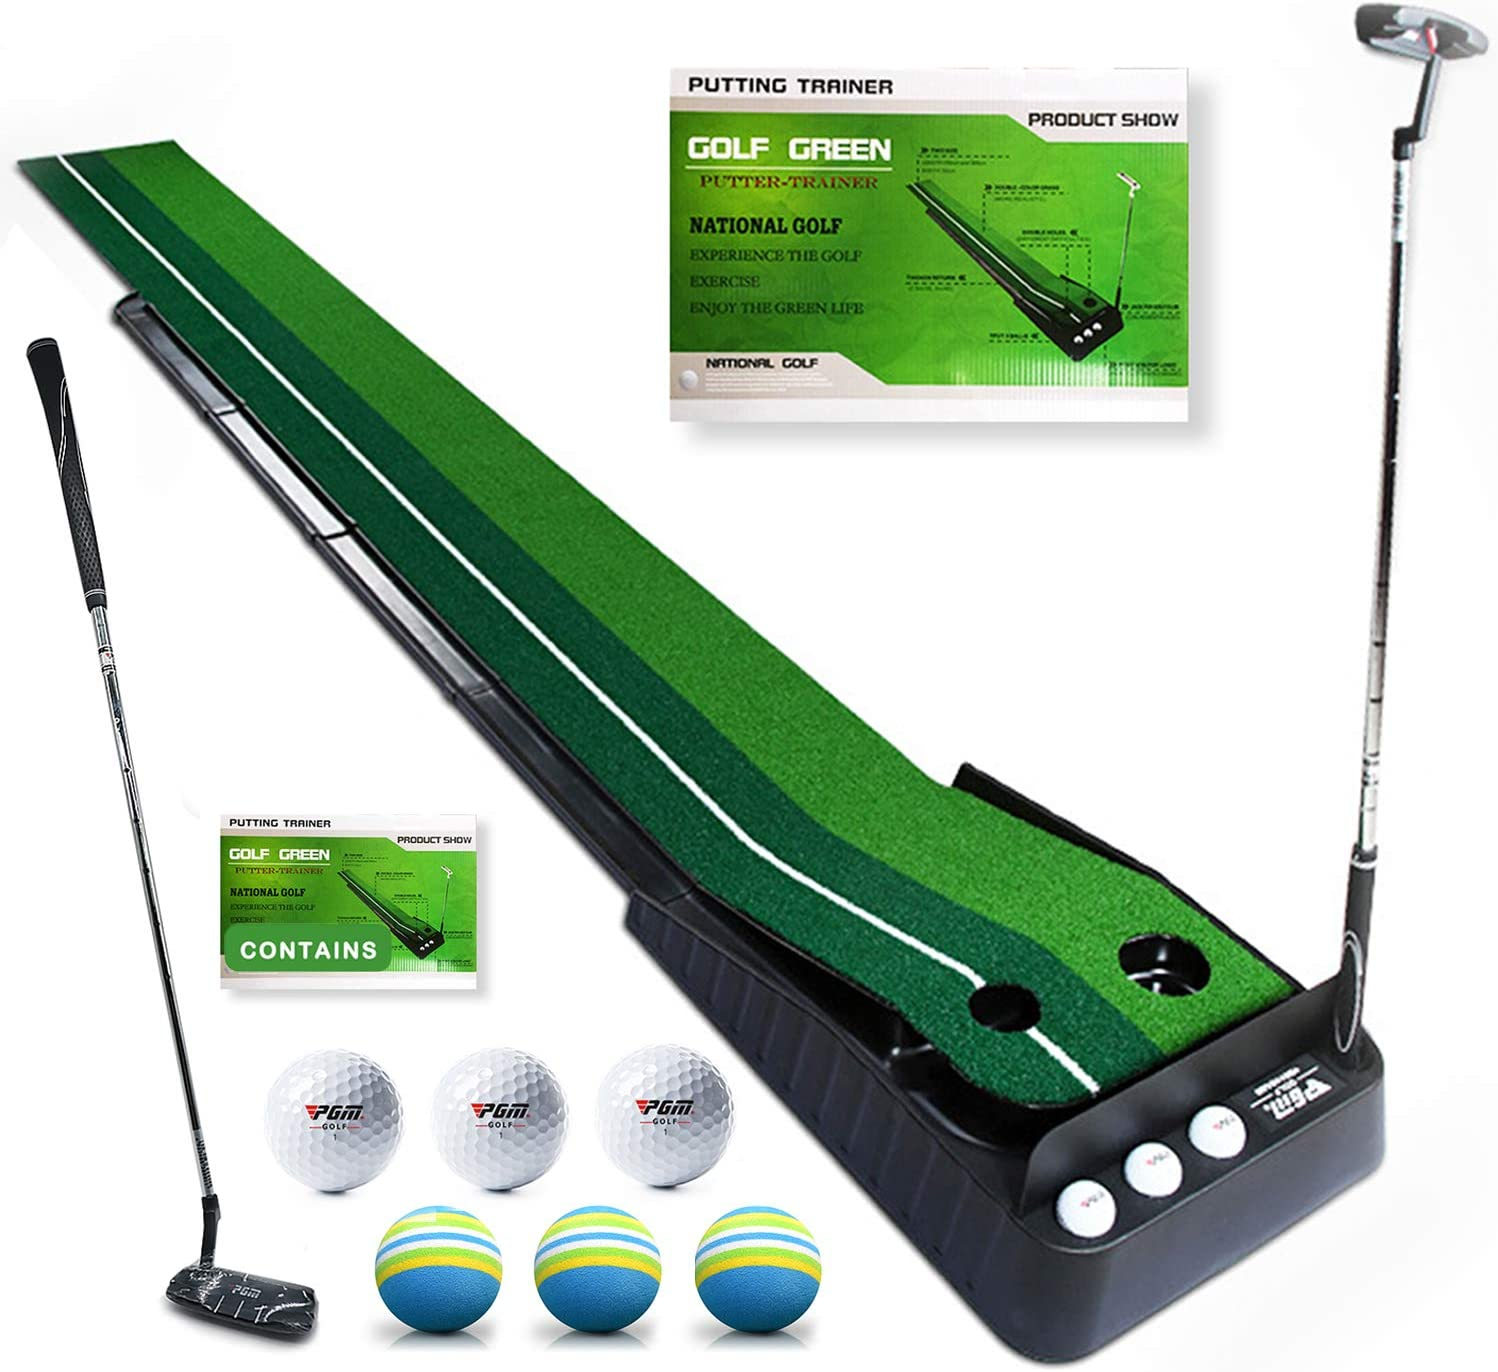 Golf Putting Green,Indoor Golf Mat With Auto Ball Return Function,Golf Practice Training Aid,synthetic turf golf practice putting green,10.5 Feet golf Mat,with 1 Golf putter,6 balls For Office Home